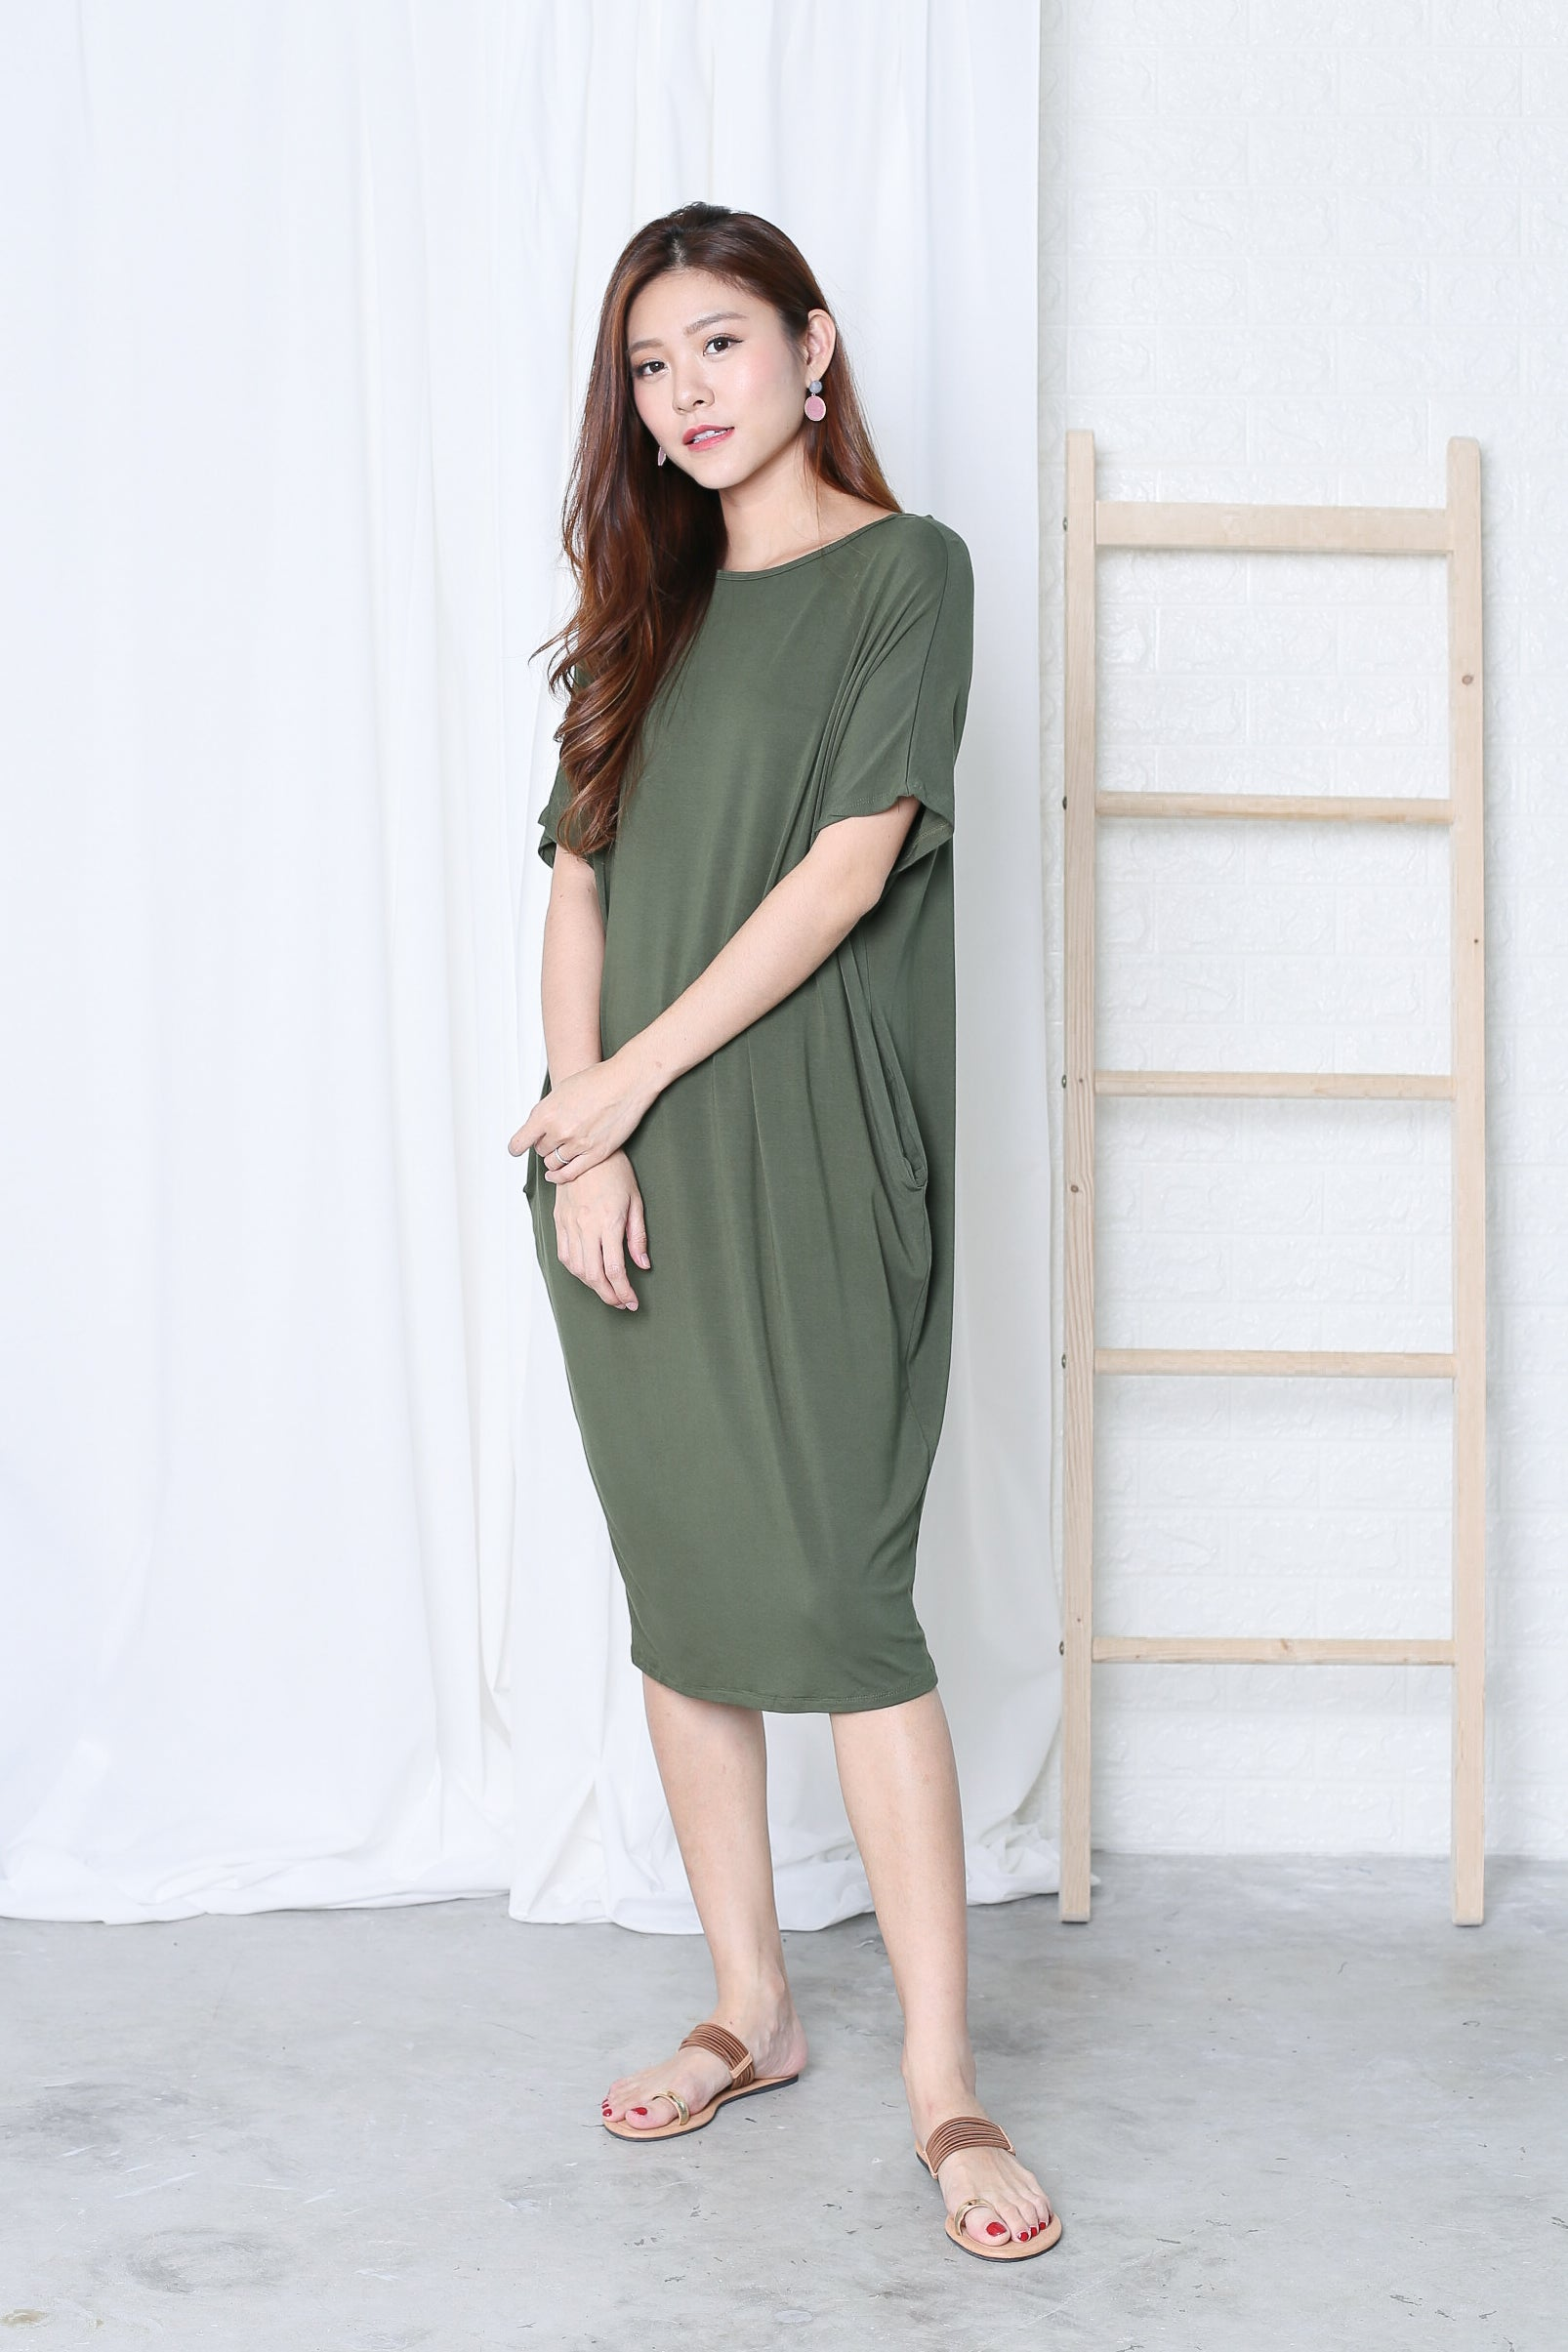 OVERSIZED LOUNGE POCKET DRESS IN OLIVE